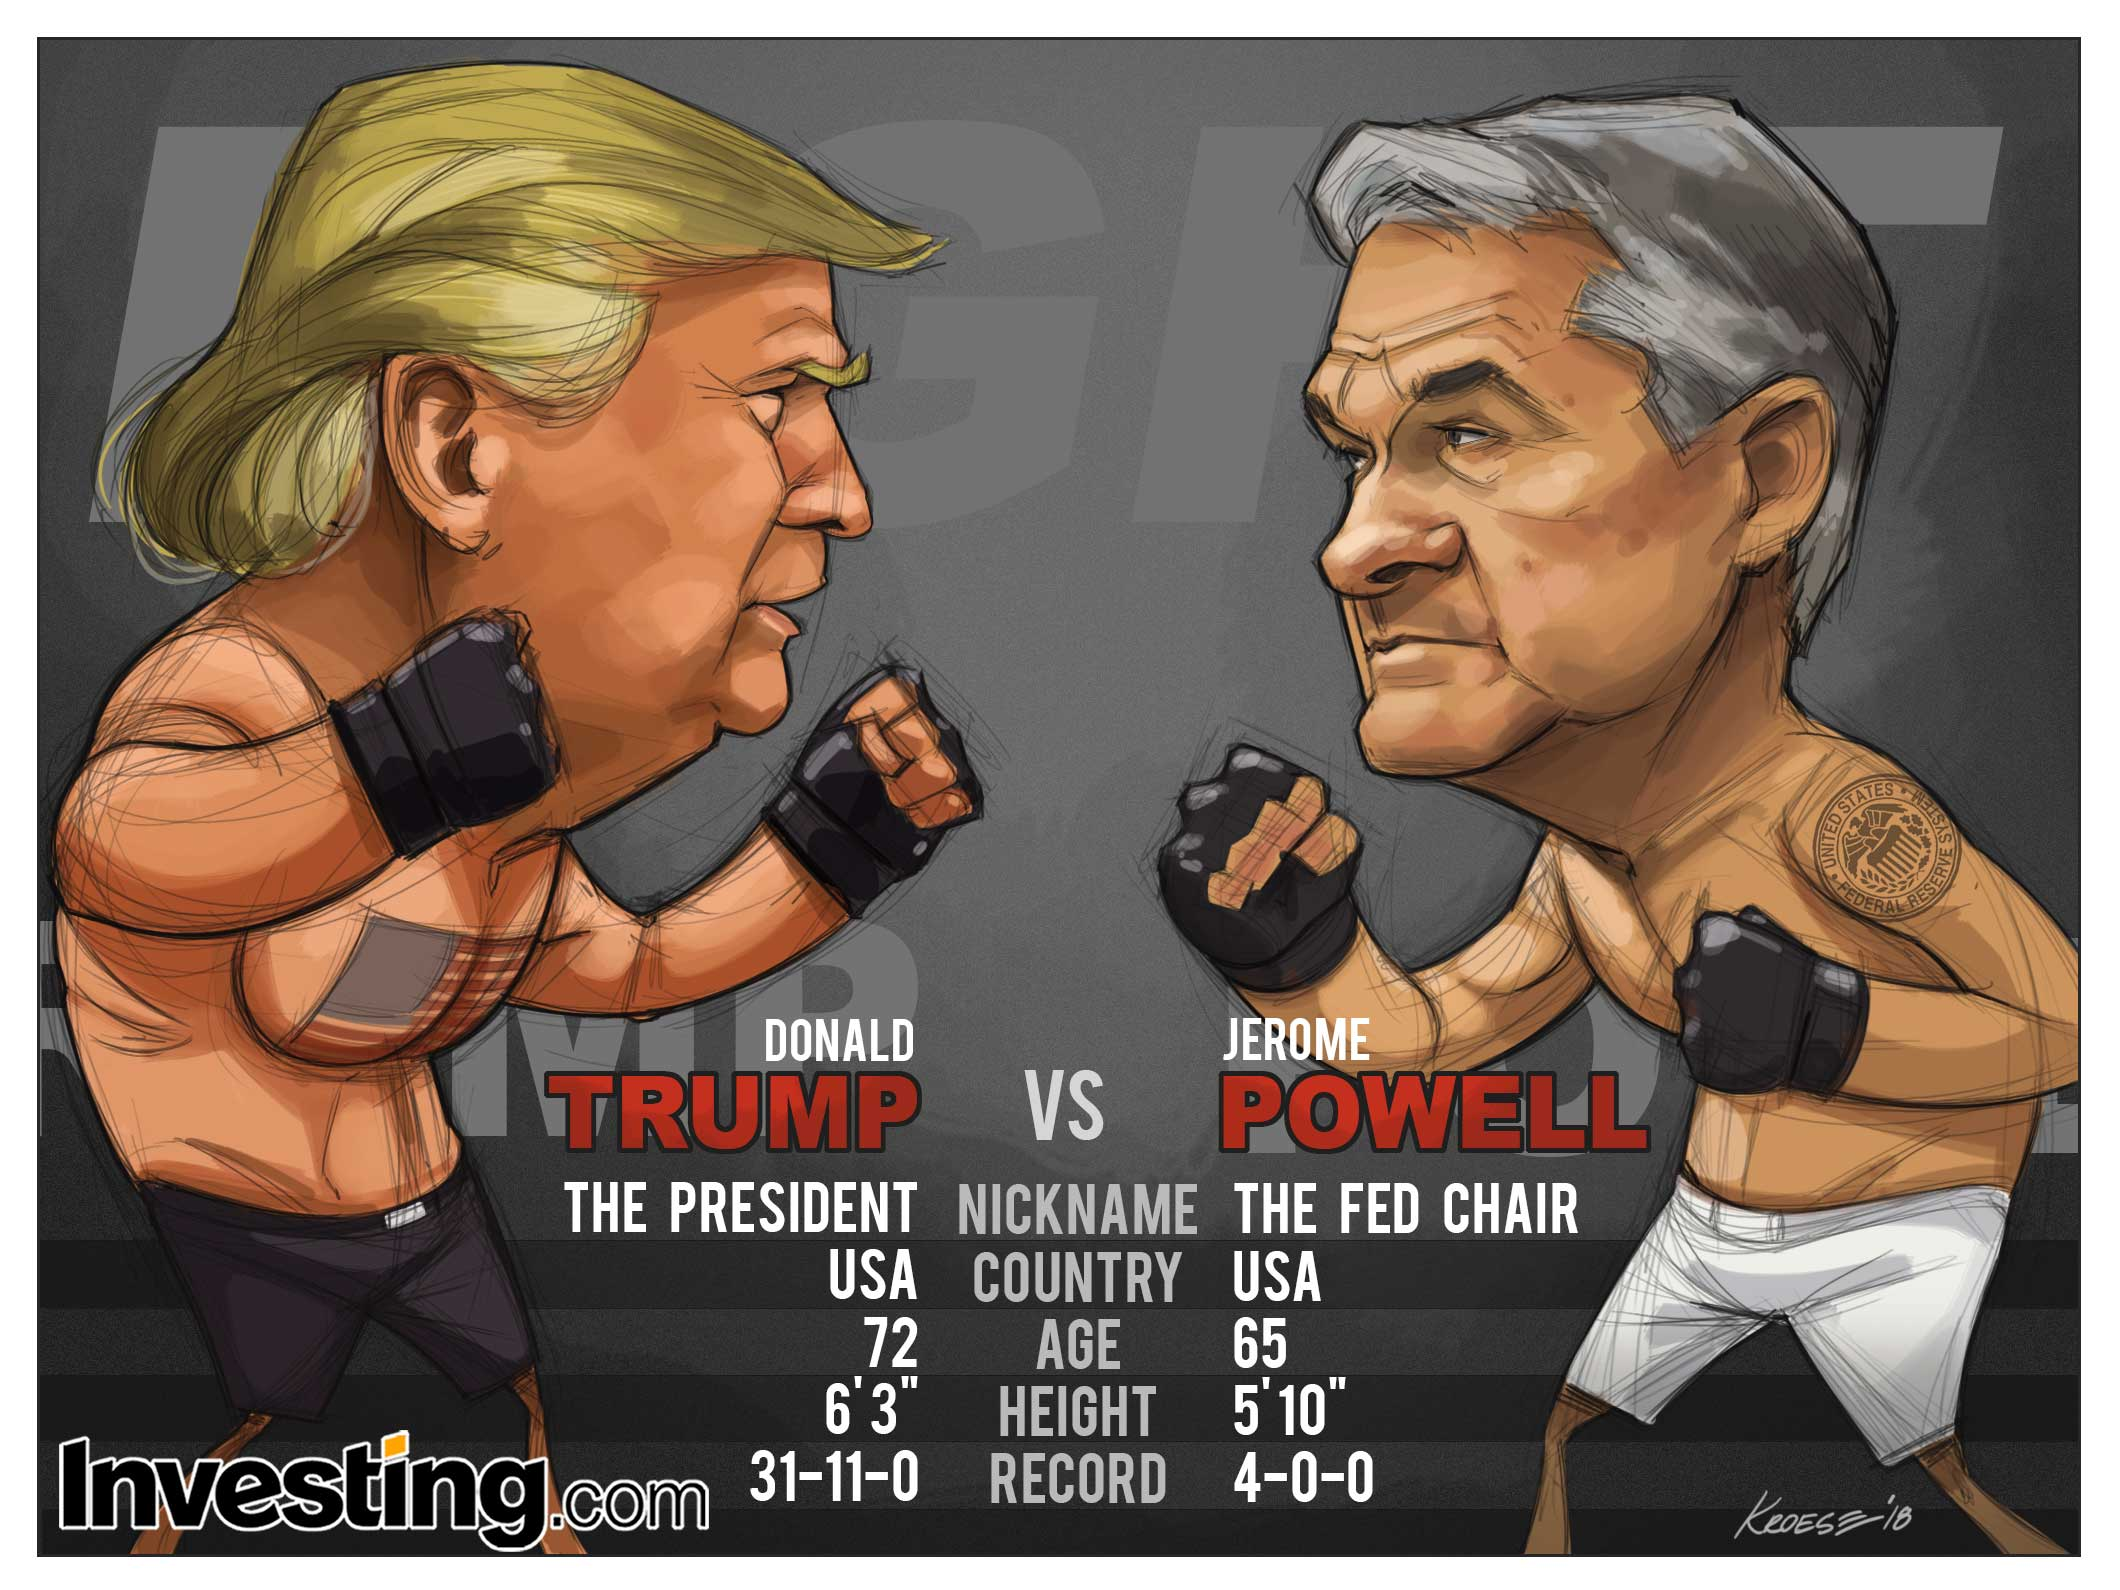 Powell sticks to rate hike message despite Trump's verbal attacks. Their fight looks set to continue in 2019